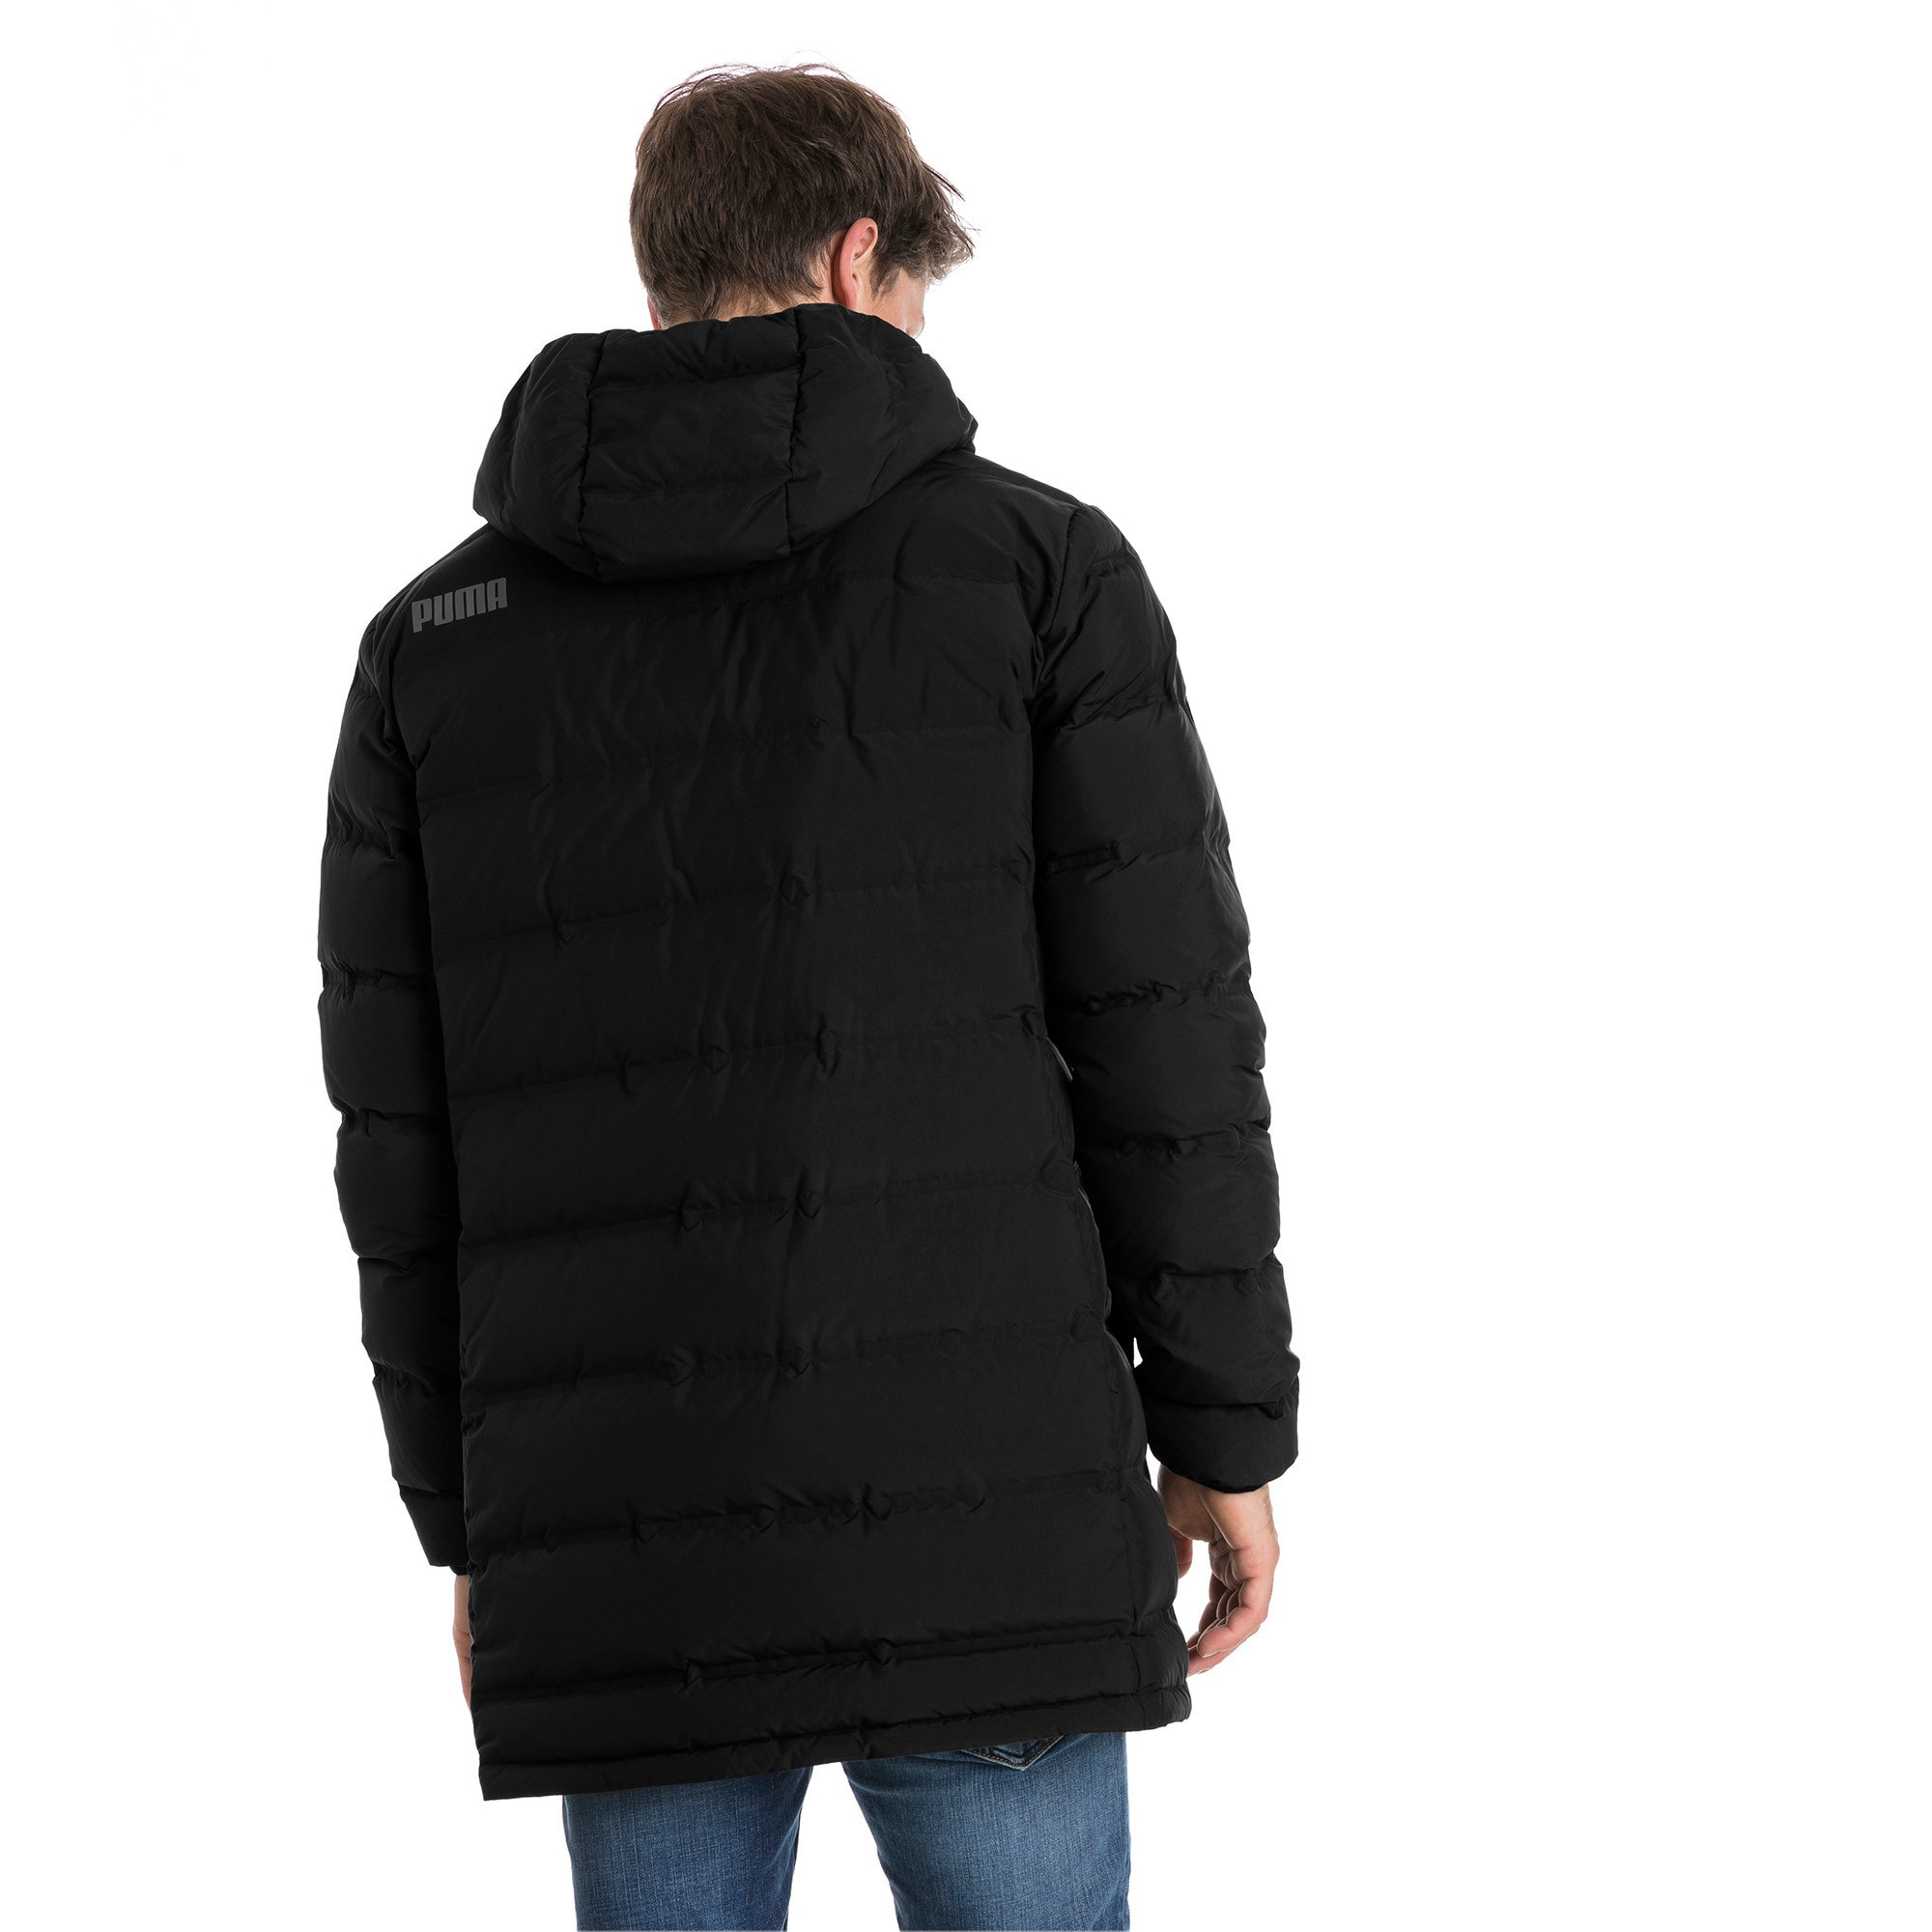 Thumbnail 2 of Herren Downguard 600 Daunenjacke, Puma Black, medium